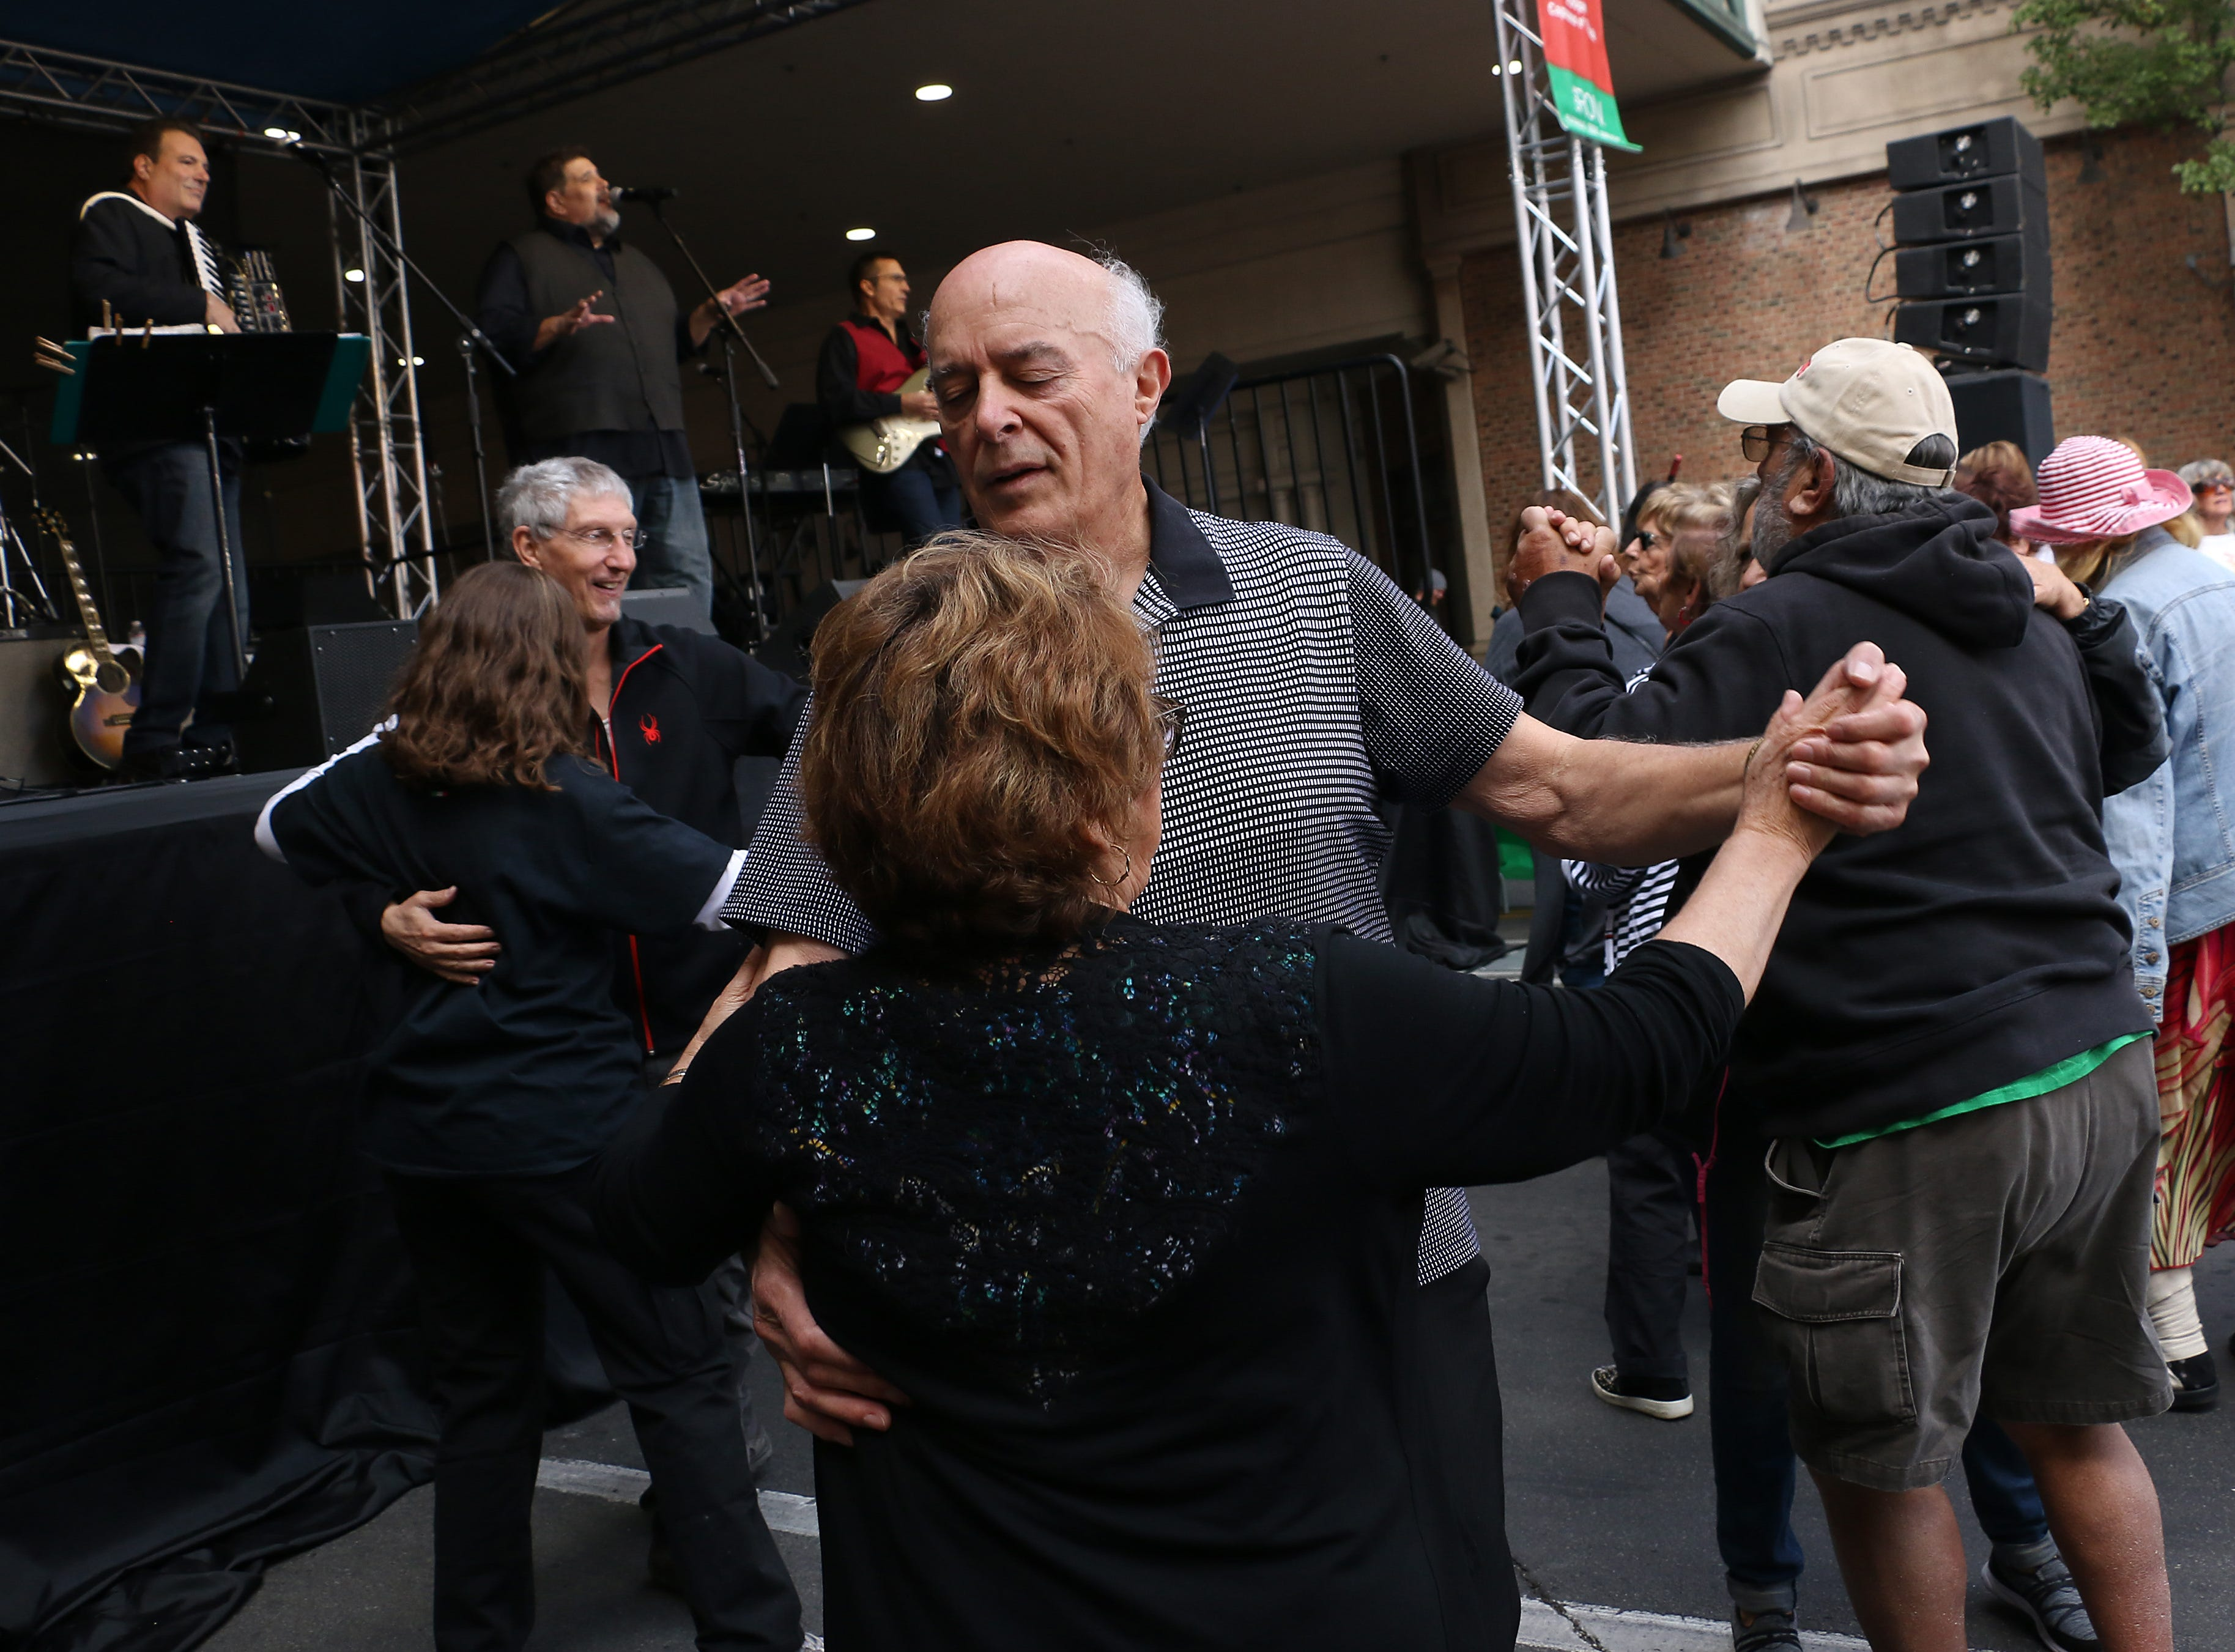 Couples dance during the Eldorado Great Italian Festival in downtown Reno on Oct. 6, 2018.